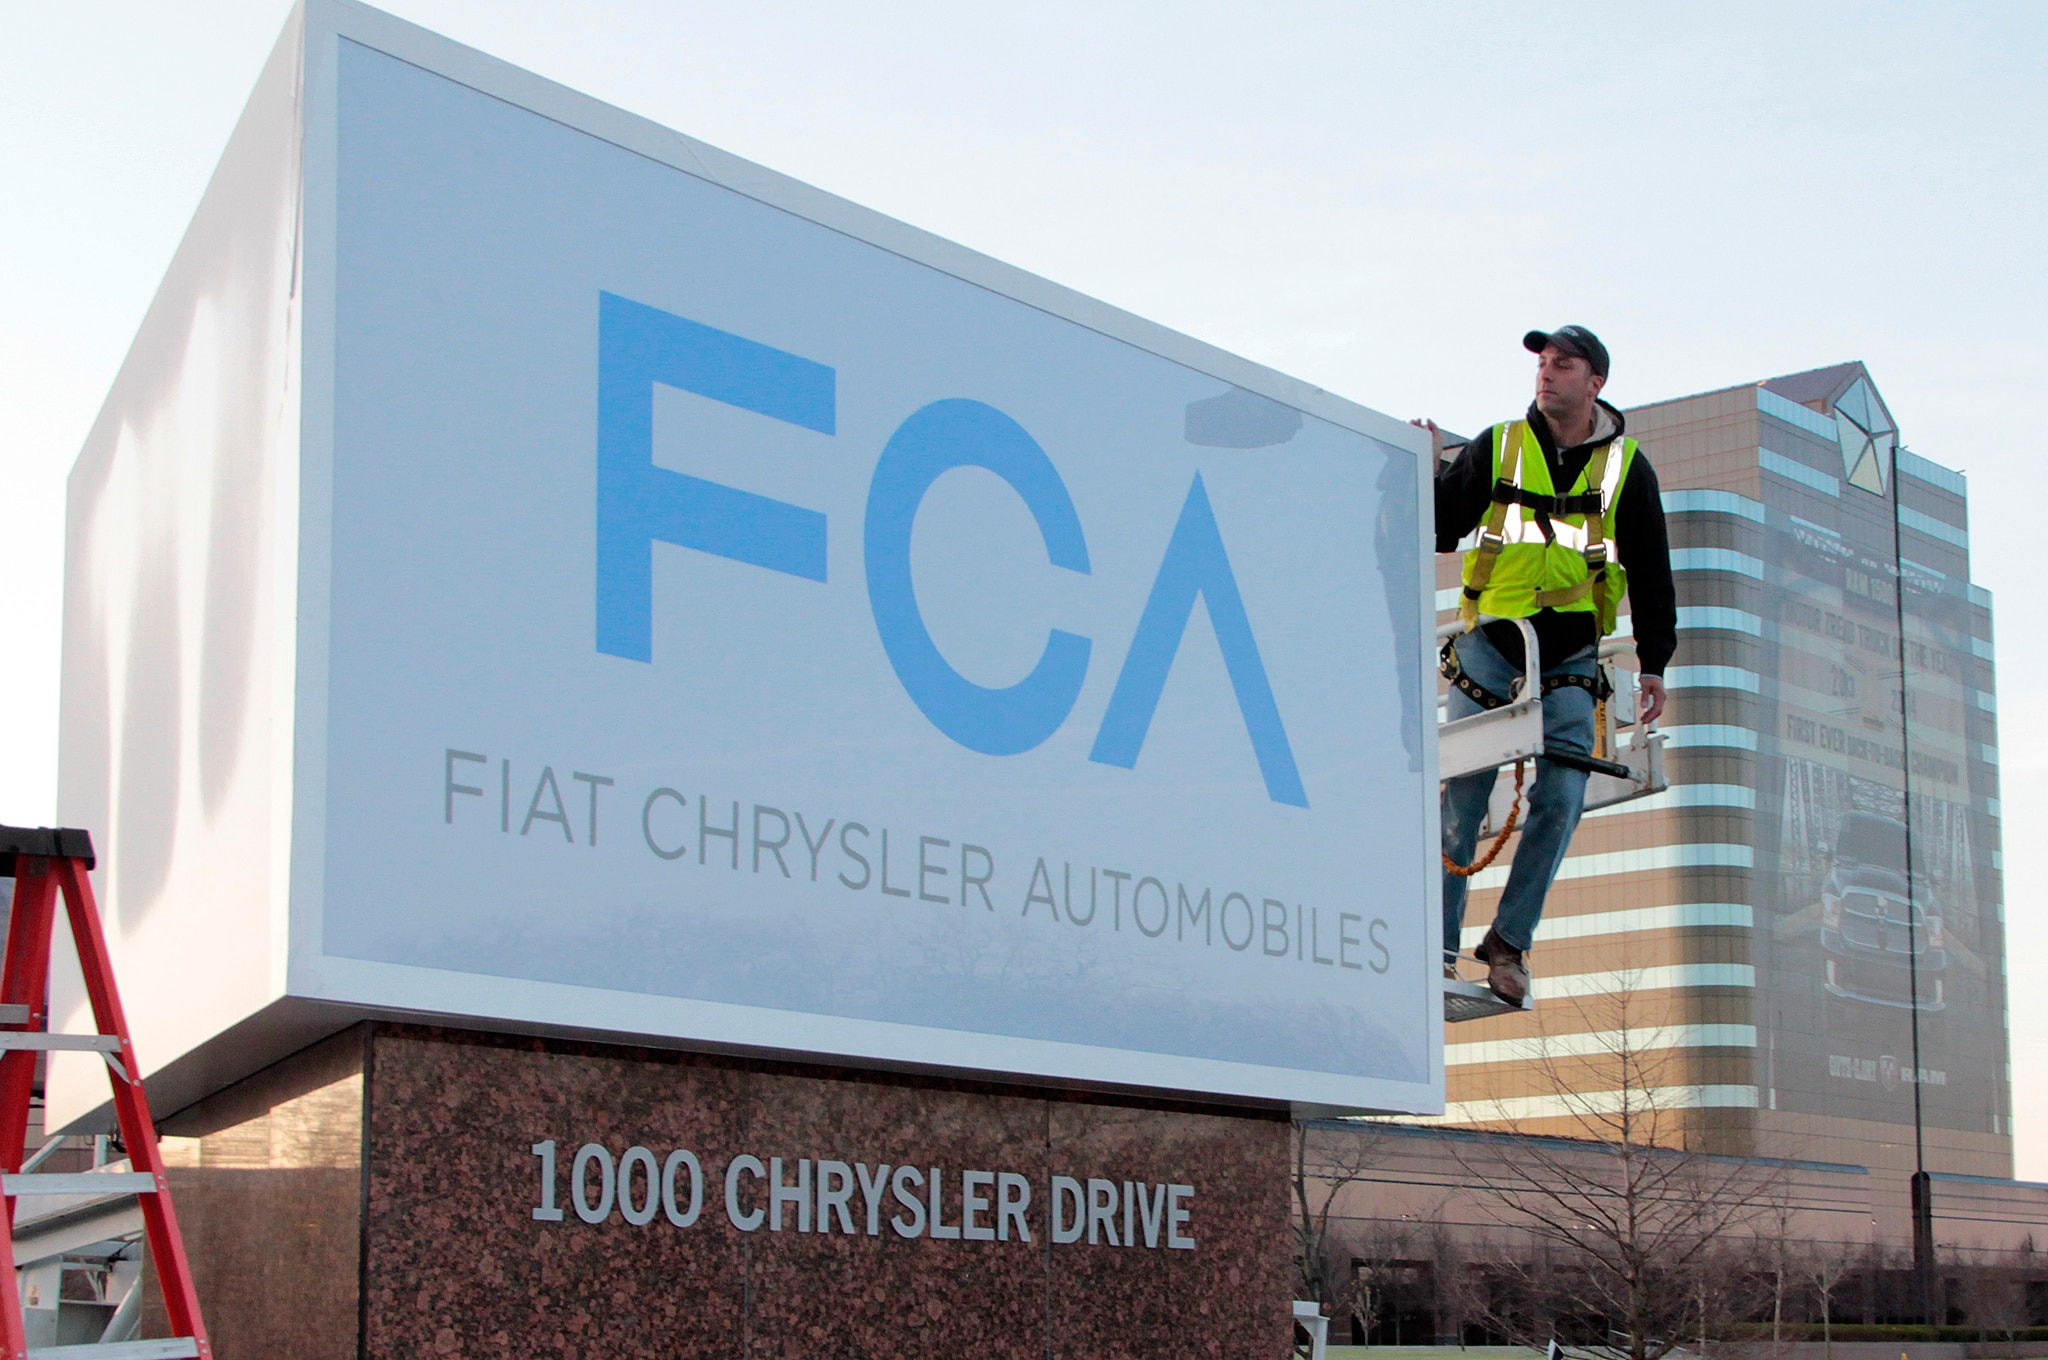 Fiat Chrysler Automobiles New Sign Construction 4